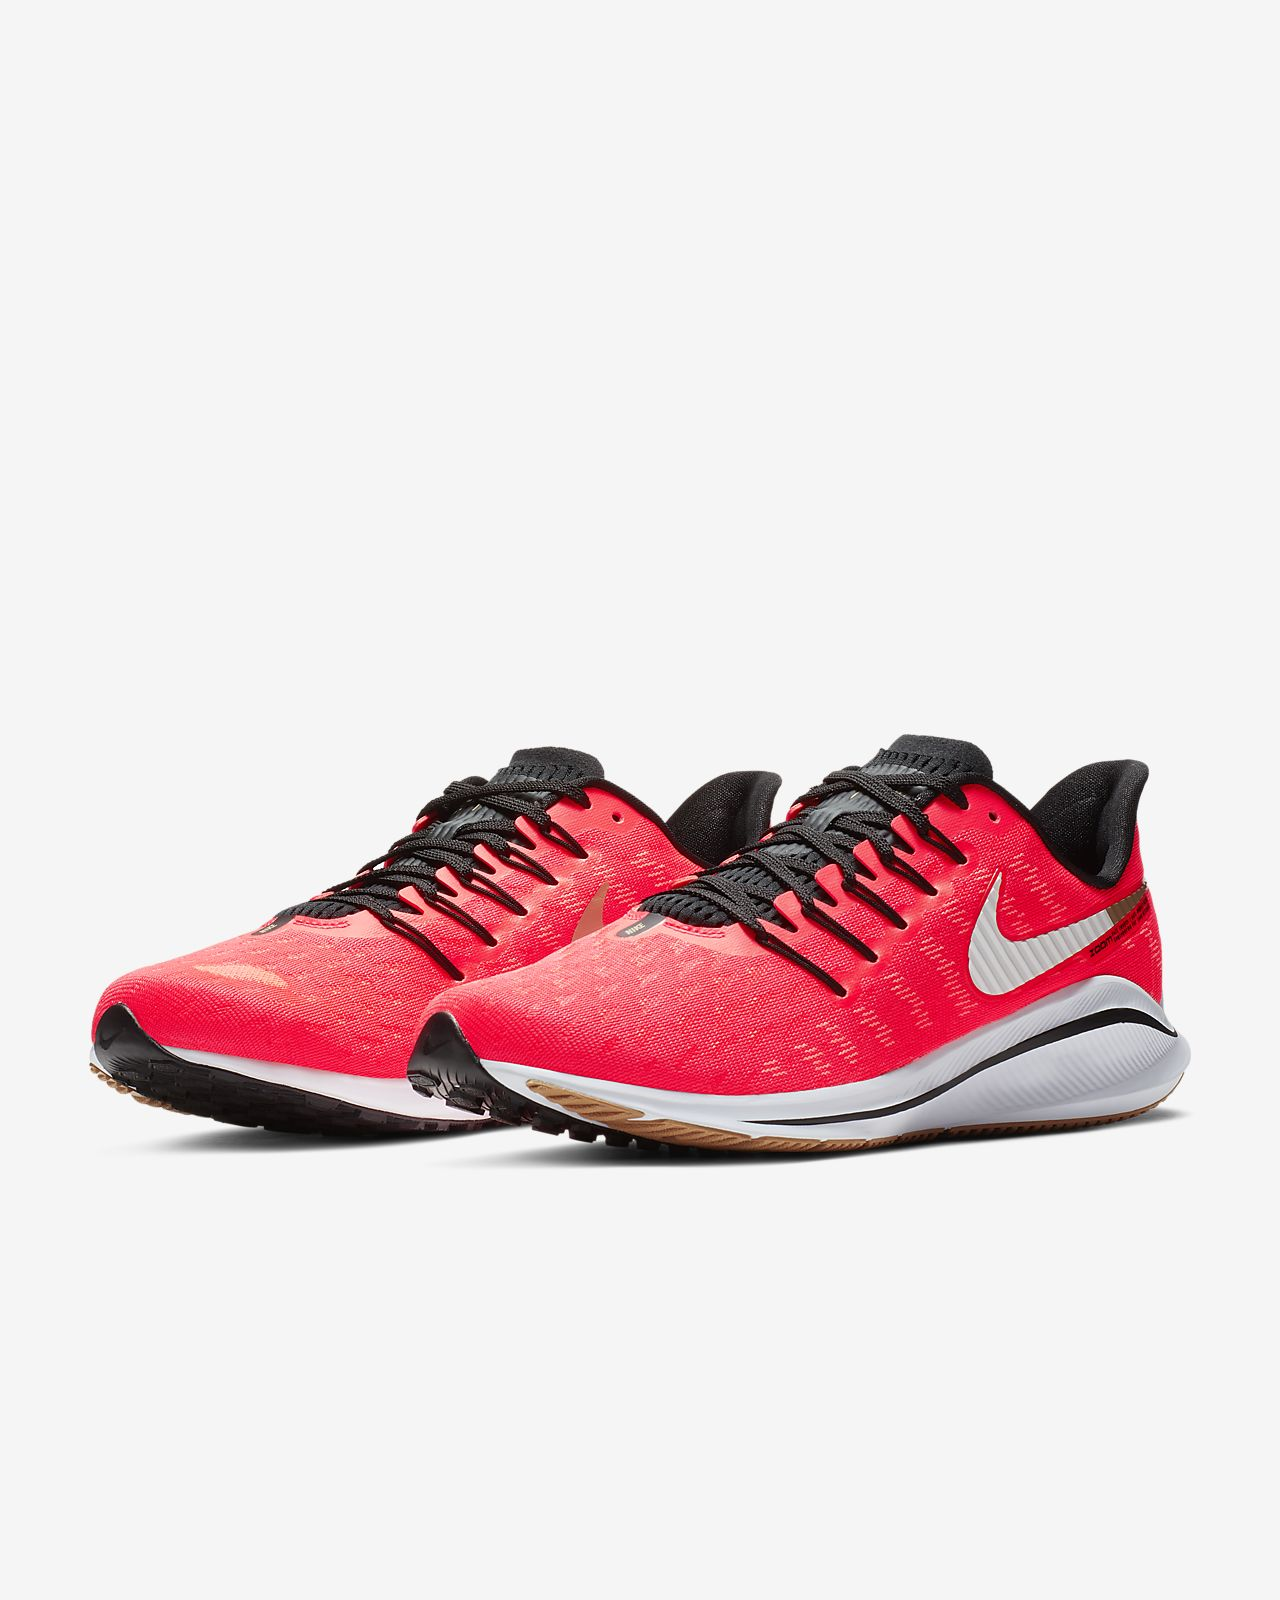 lowest price 965f1 251b6 ... Chaussure de running Nike Air Zoom Vomero 14 pour Homme